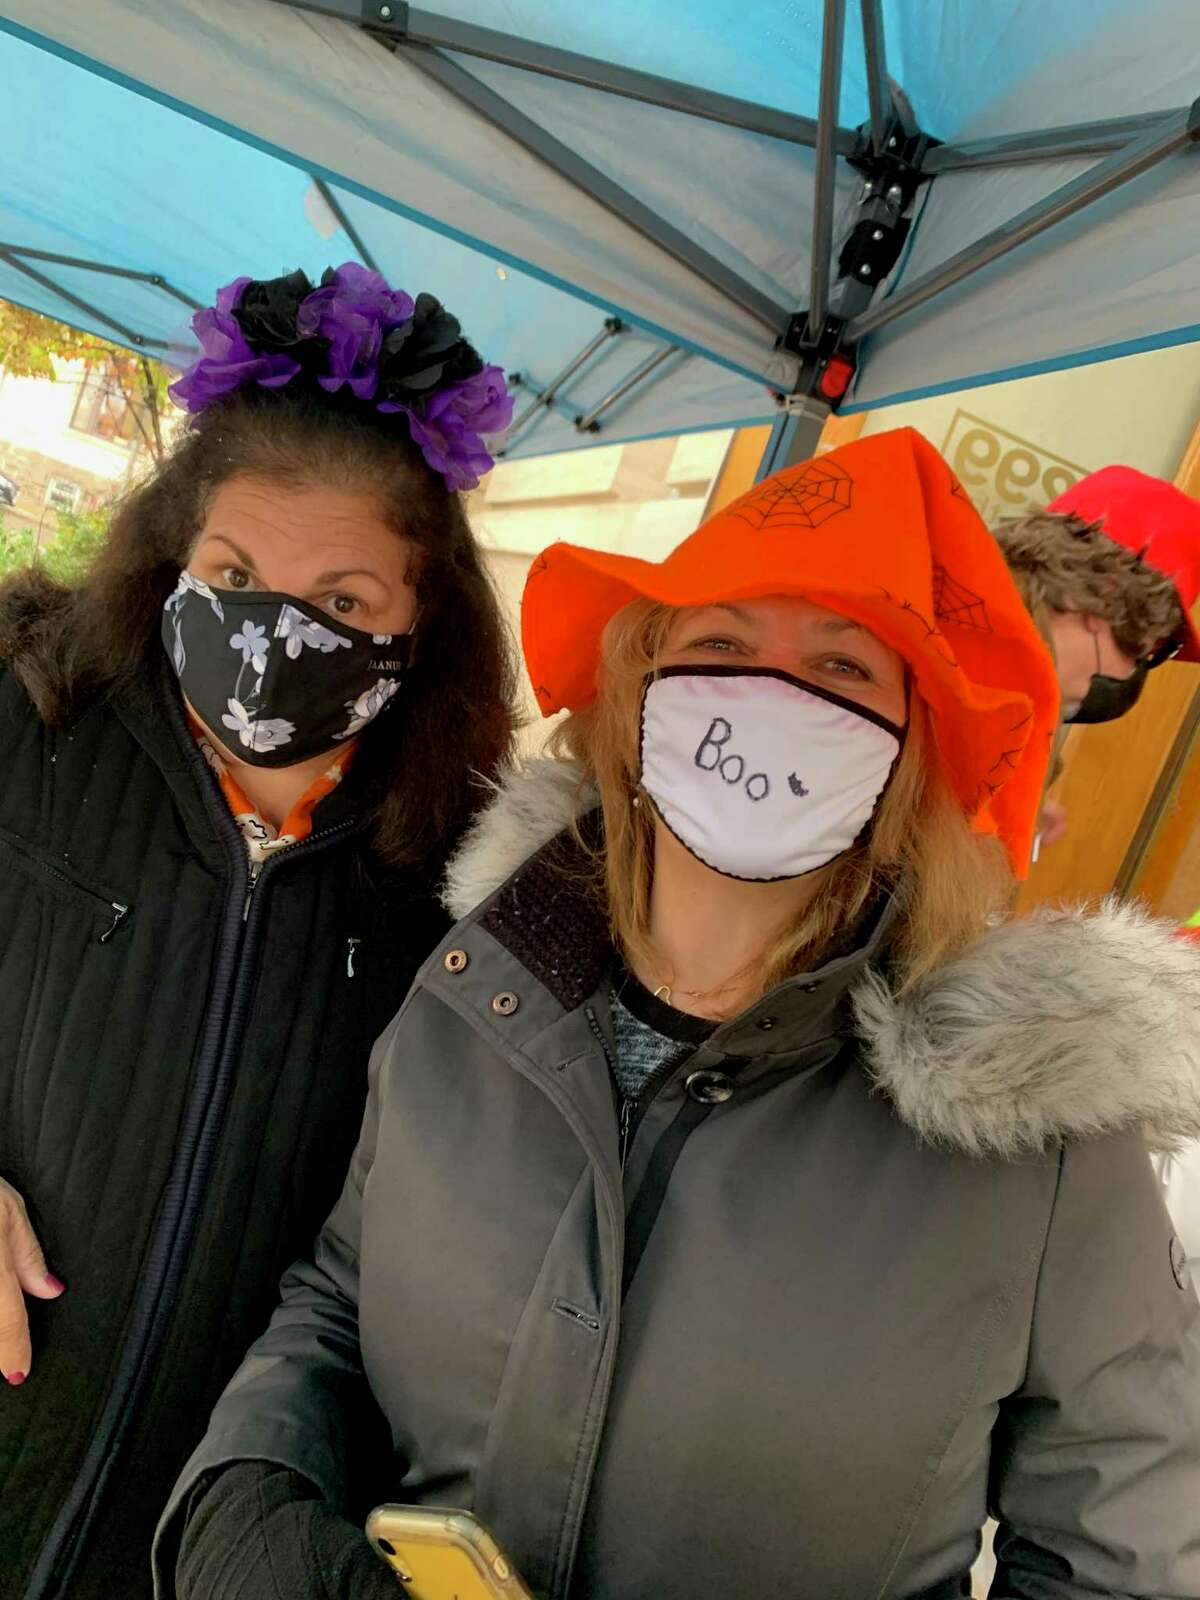 Director of the Greenwich Commission on Aging Lori Contadino, left, and Oasis Senior Adviser Susan Doyle pose during the Teddy's Ready Drive-Thru Halloween Lunch for Greenwich Senior Center members on Friday, Oct. 30. Presented by the Greenwich Commission on Aging, senior center head chef Teddy Torchon and his staff served more than 150 hot lunches and distributed trick-or-treat bags full of candy and goodies from Commission on Aging sponsors. The staff at the Senior Center said they have been helping older residents remain engaged, healthy and happy during the COVID-19 crisis. They have also been offering digital classes and events and will continue to offer Teddy's Ready Drive-Thru Lunches twice a month, throughout the year. Membership to the Senior Center is free. Members can sign up and be eligible for Drive Thru lunches for $5 per person, including a Thanksgiving feast with turkey and all the trimmings on Nov. 23. The next Drive-Thru Lunch will be Nov. 13, with glazed meatloaf with mushroom gravy, rice, peas and pearl onions, chocolate cake and refreshments. To sign up, call Deana at 203-862-6700.